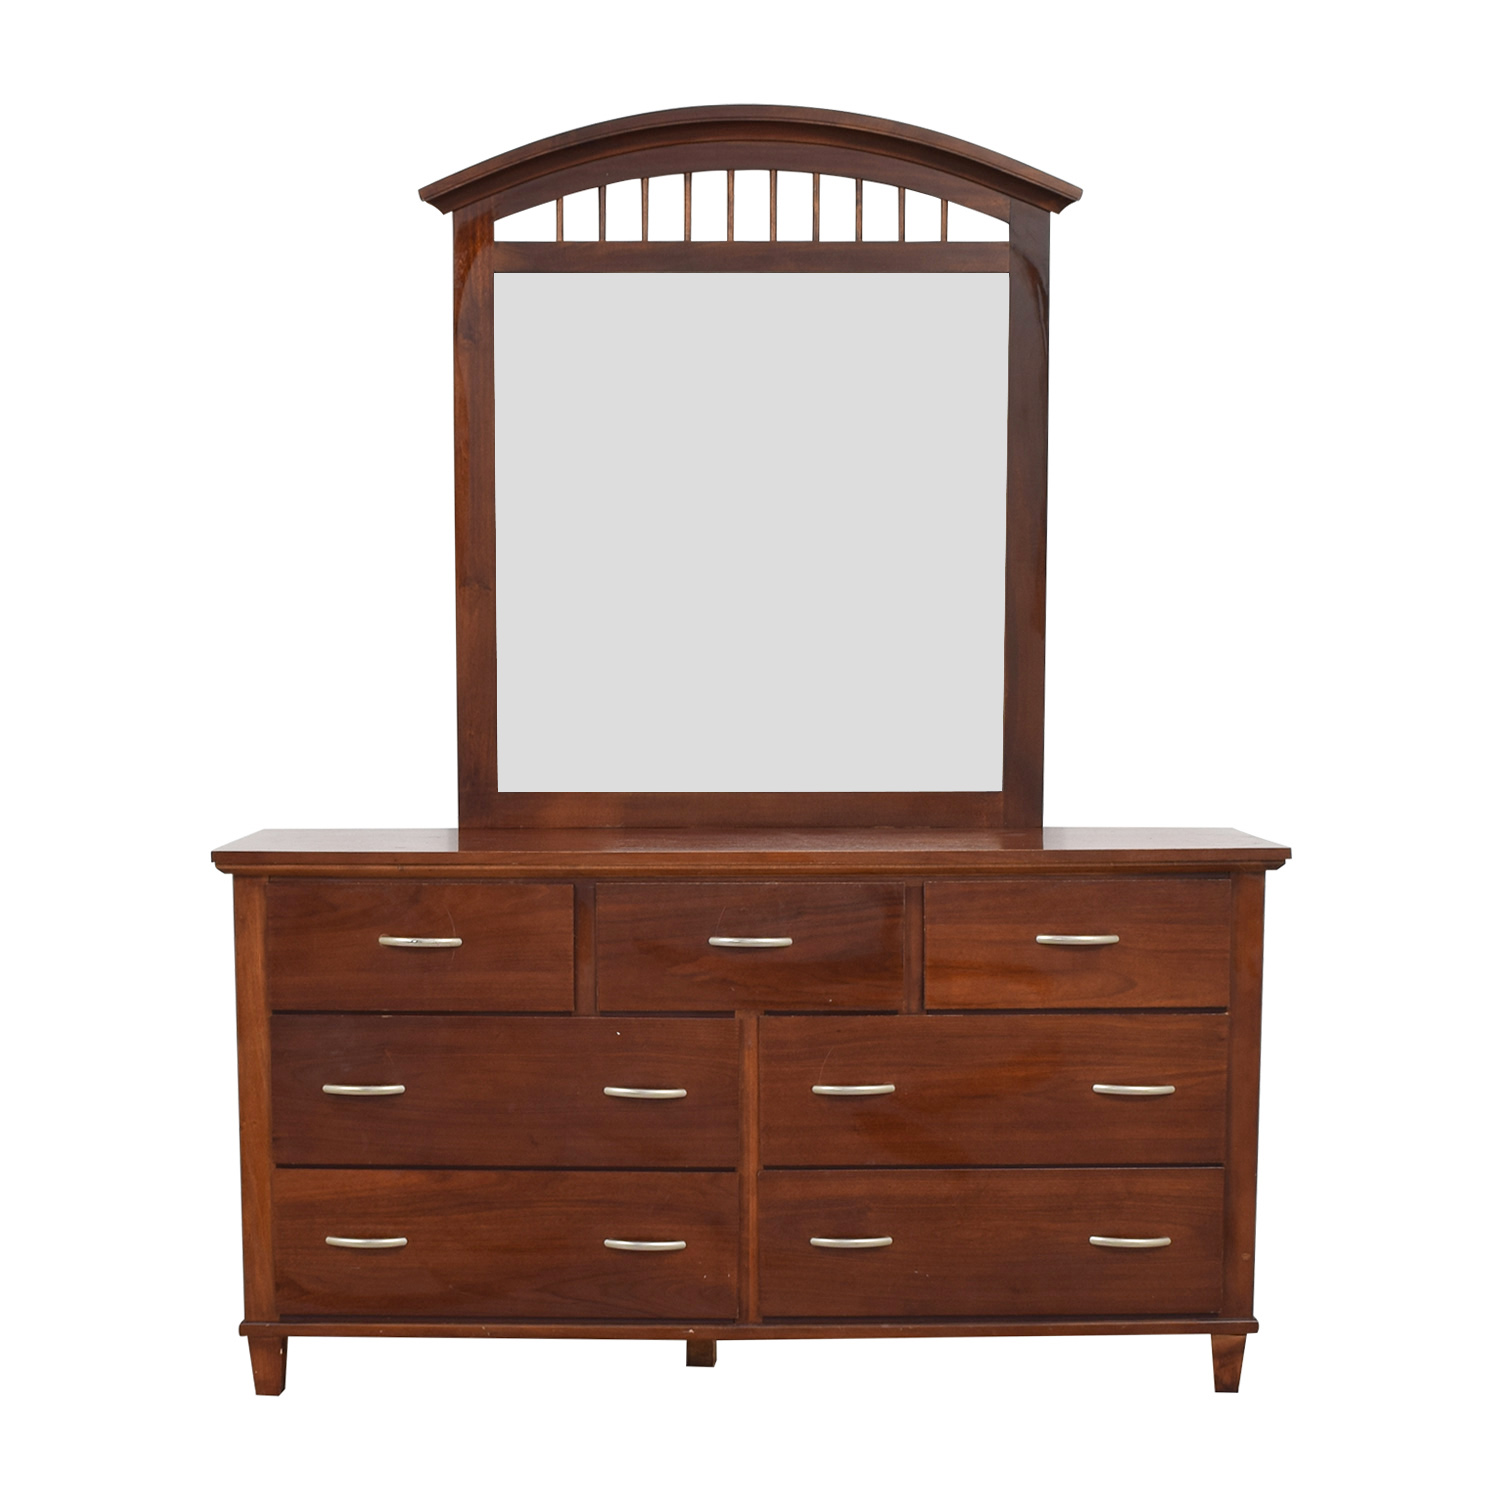 Broyhill Broyhill Wood Seven-Drawer Dresser with Mirror second hand